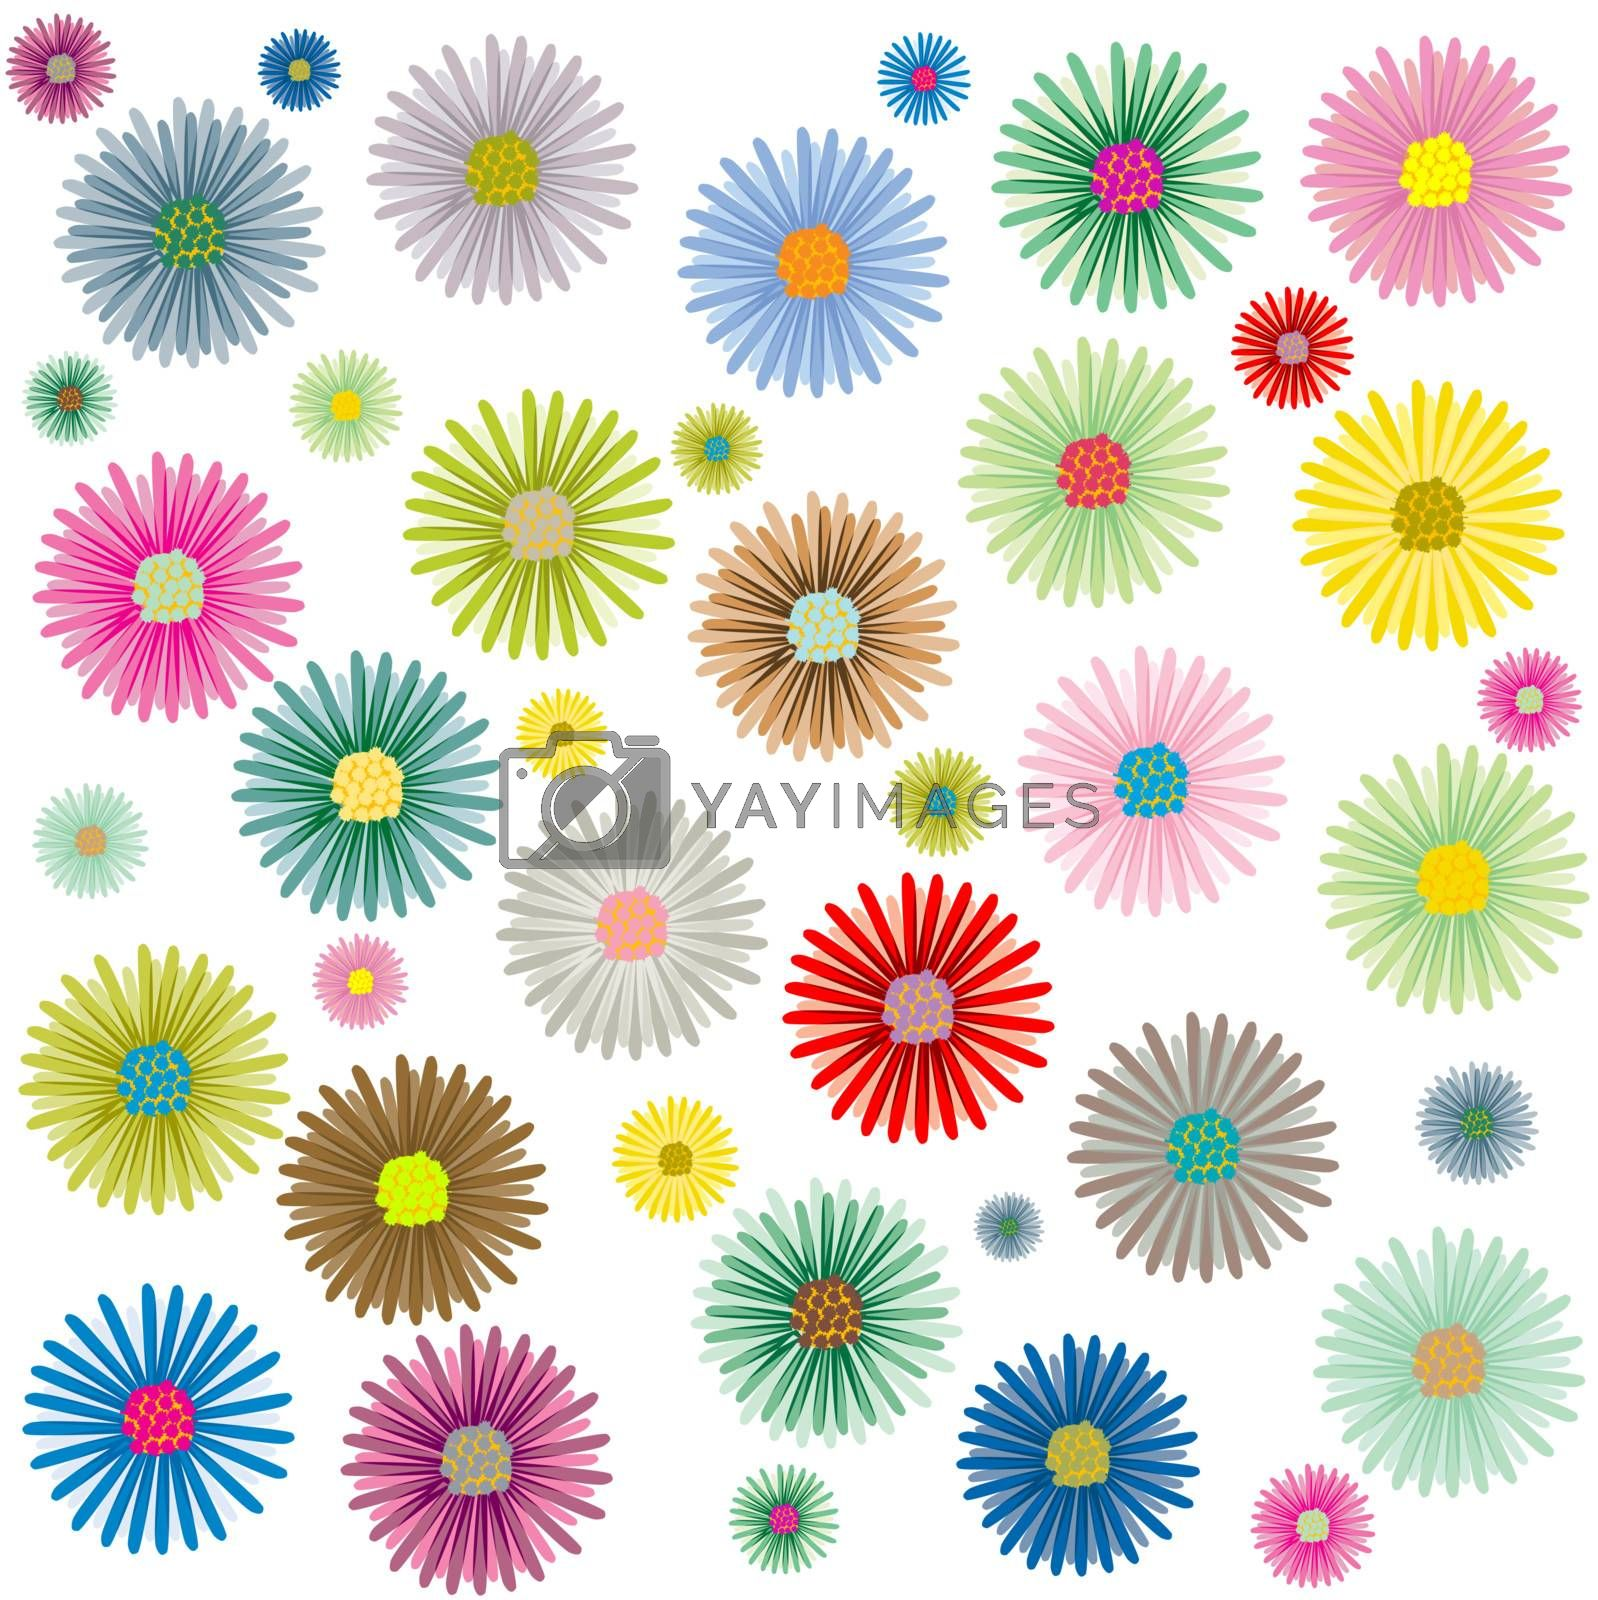 colored flowers pattern isolated on white background by robertosch